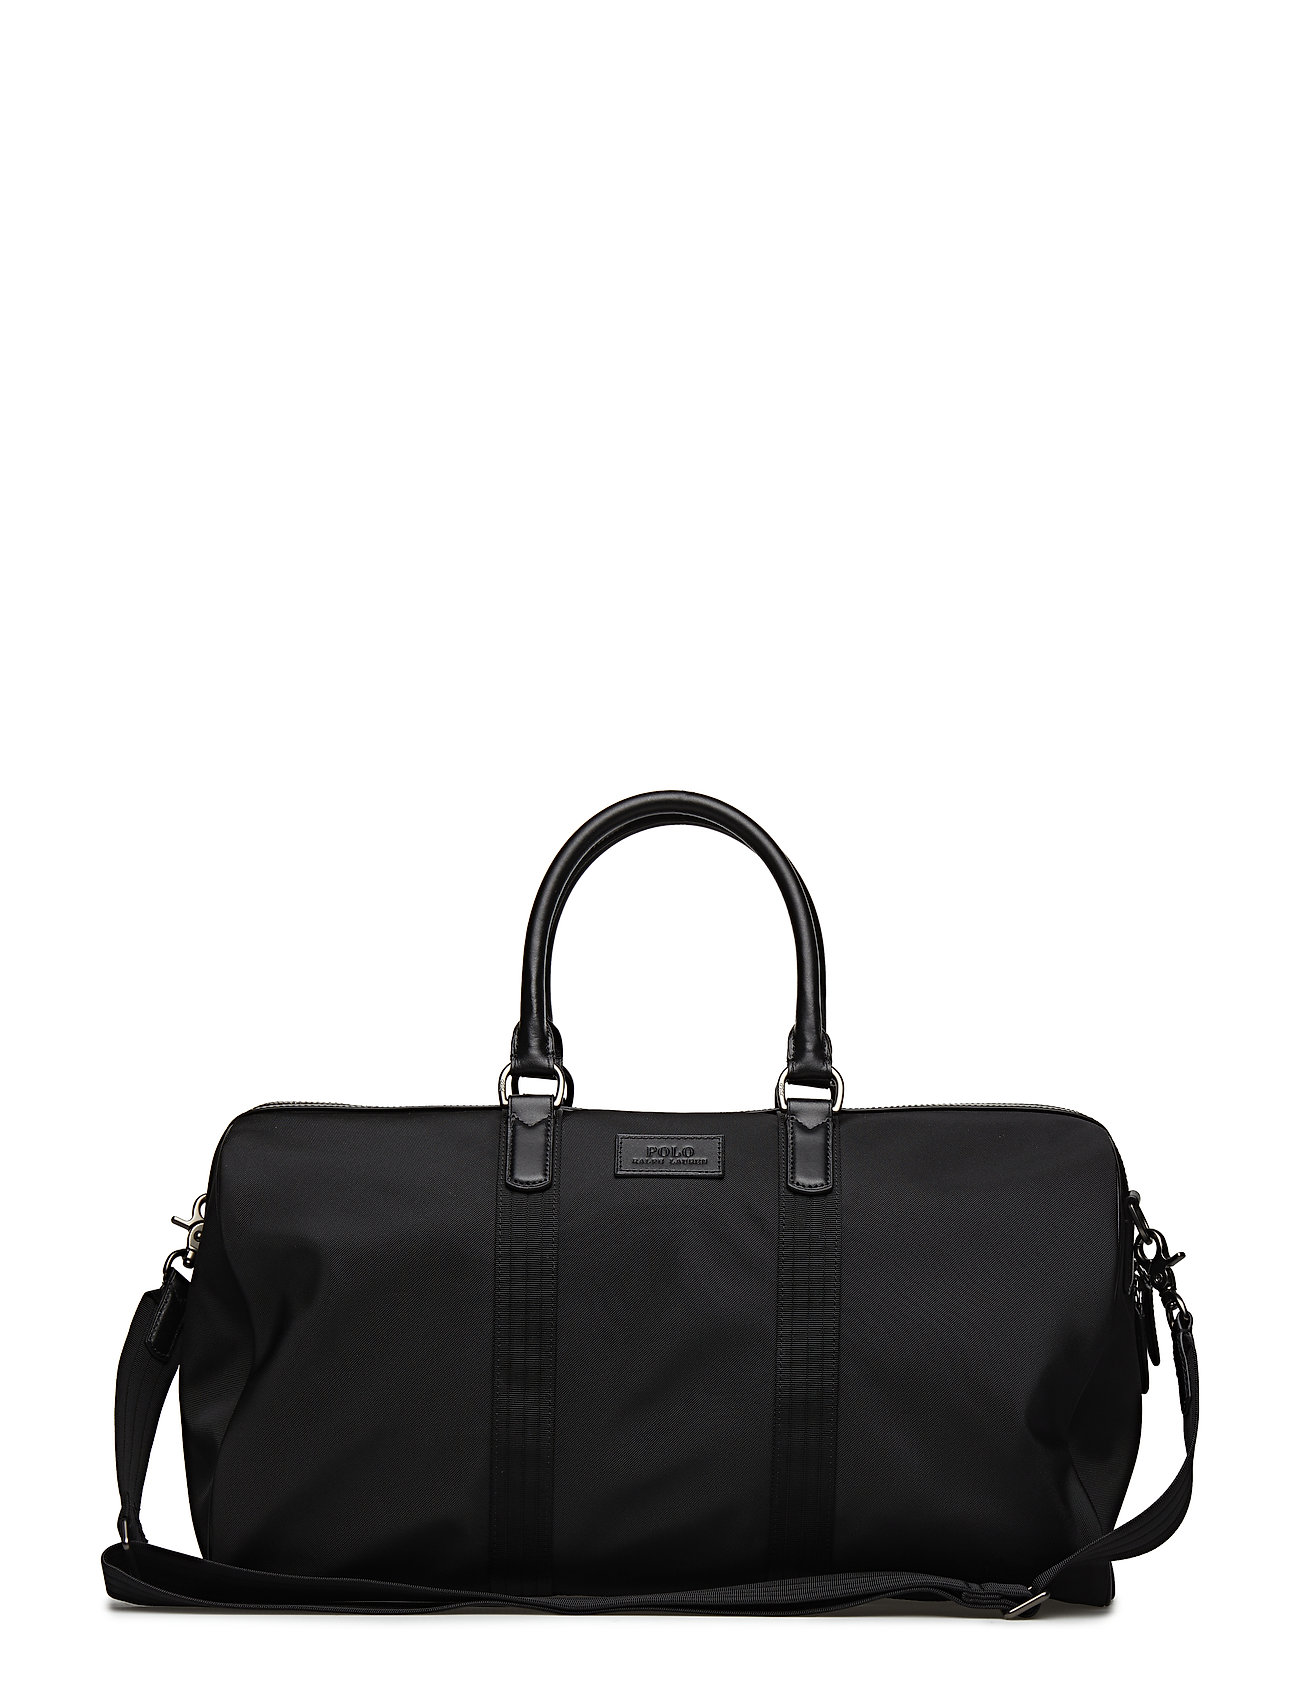 9d218a3b87d9 Thompson Duffel Bag (Black) (£194.35) - Polo Ralph Lauren -